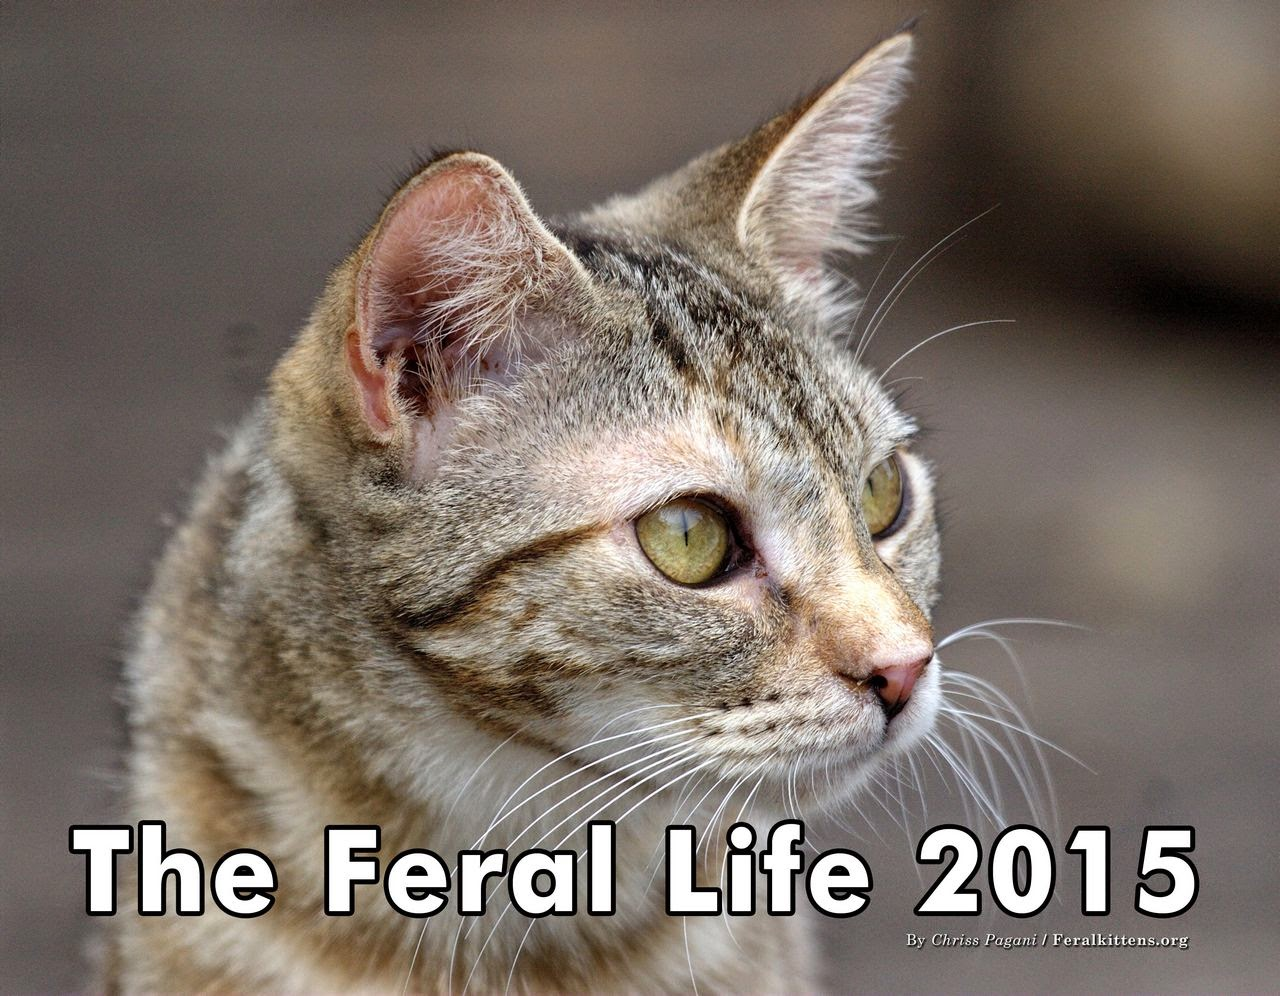 The Feral Life 2015